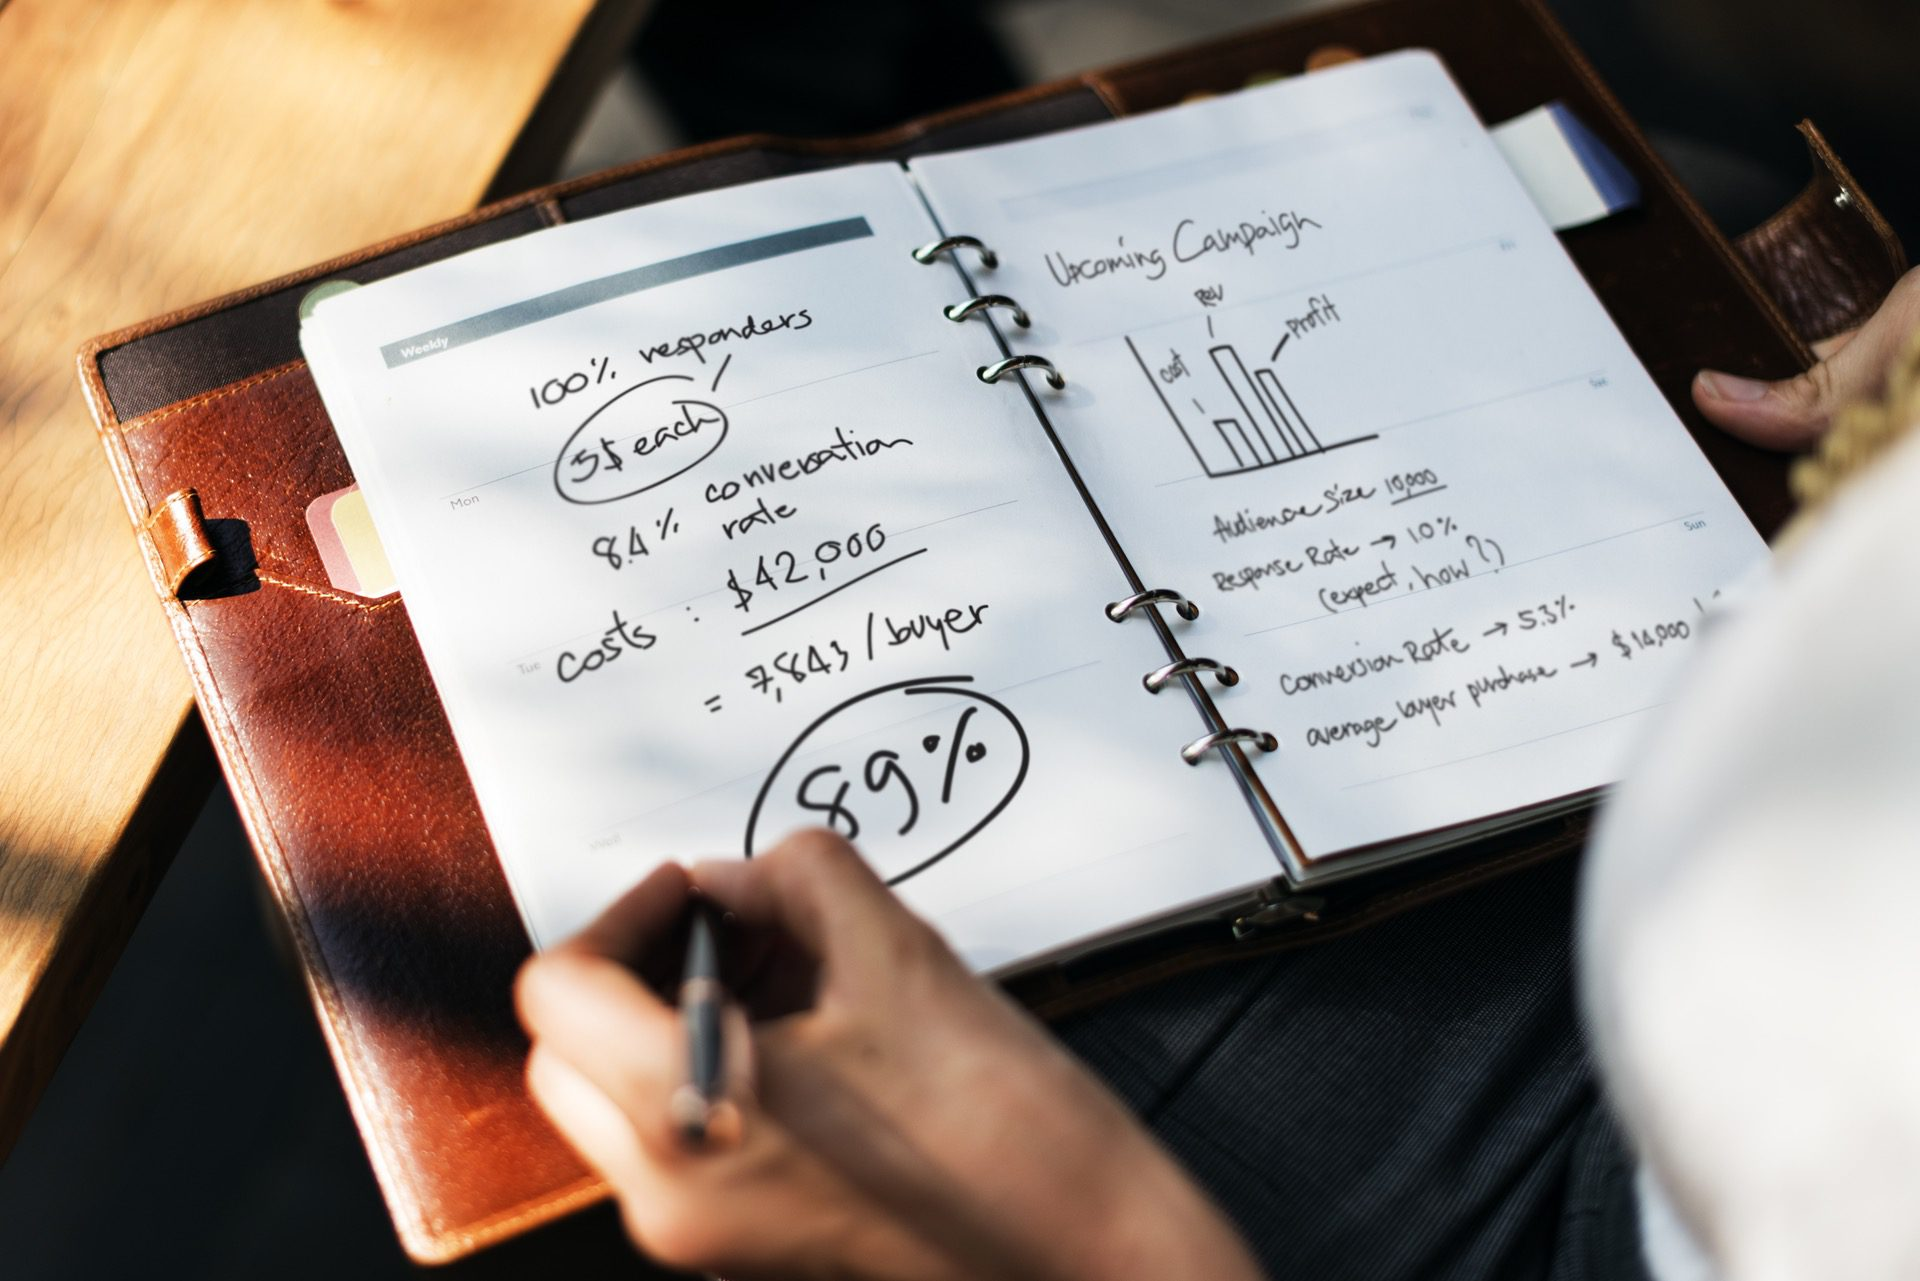 Set clear KPIs and goals for your Beta community and keep track of them